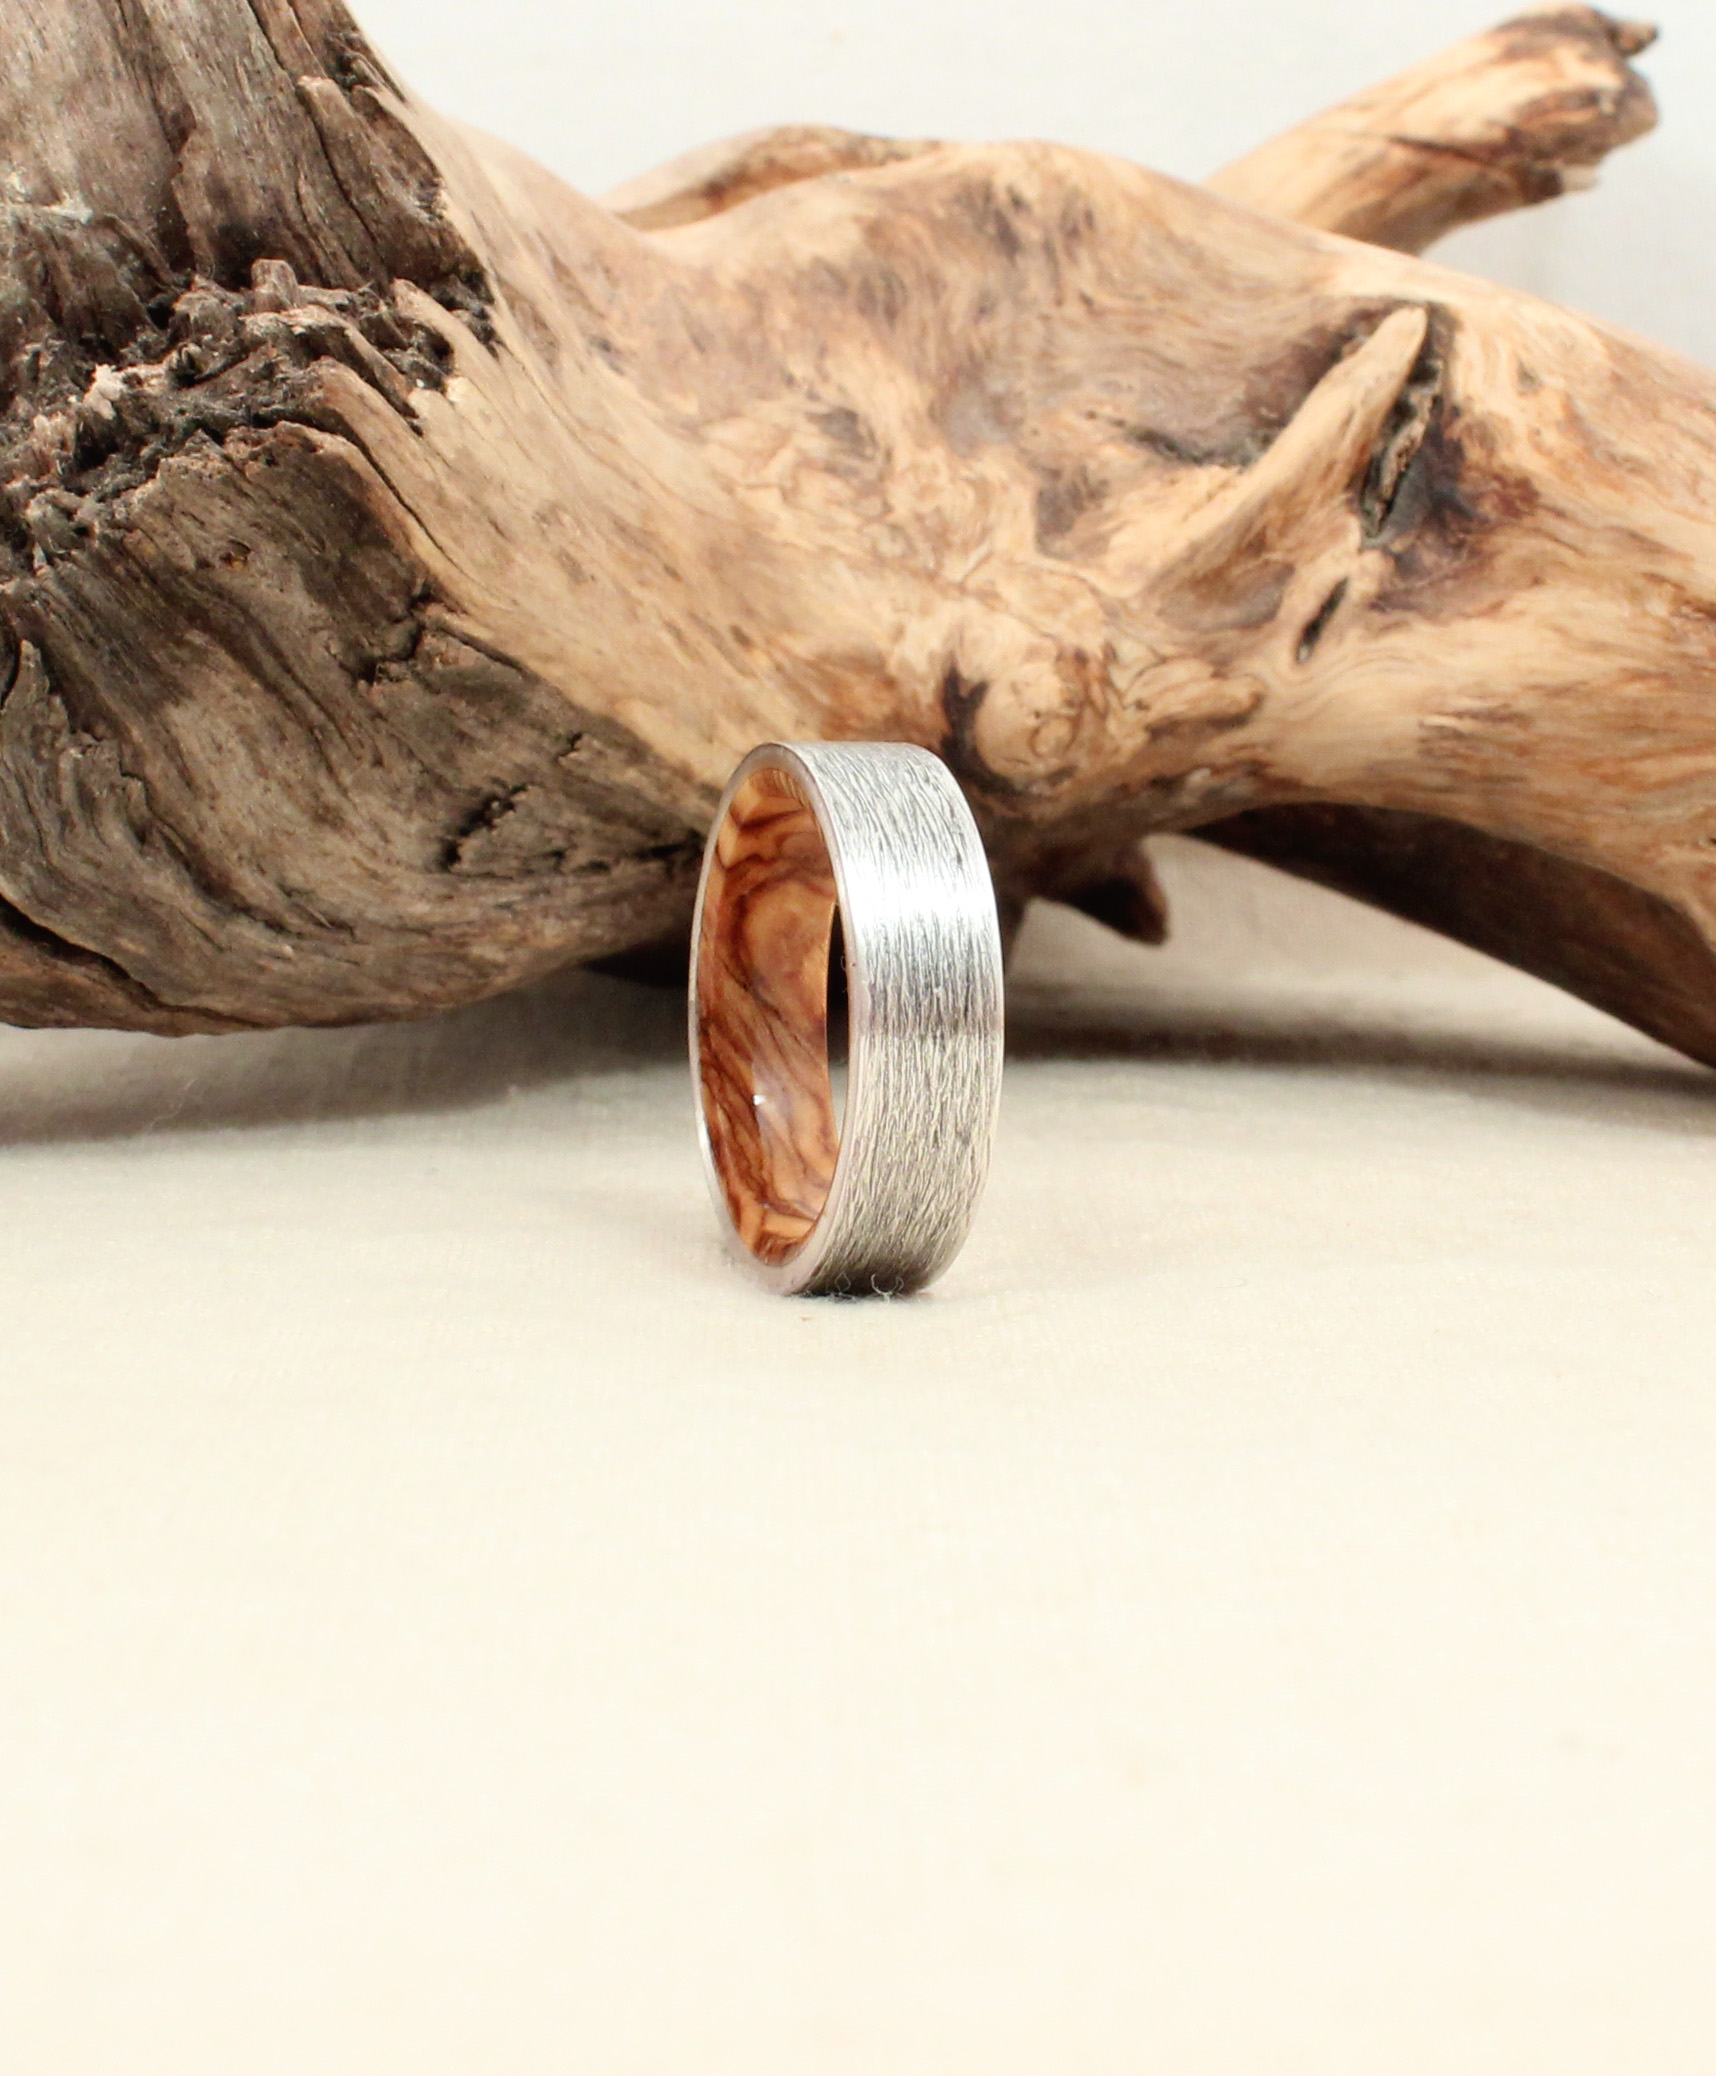 Bethlehem Olivewood and Textured, RusticatedFine Silver